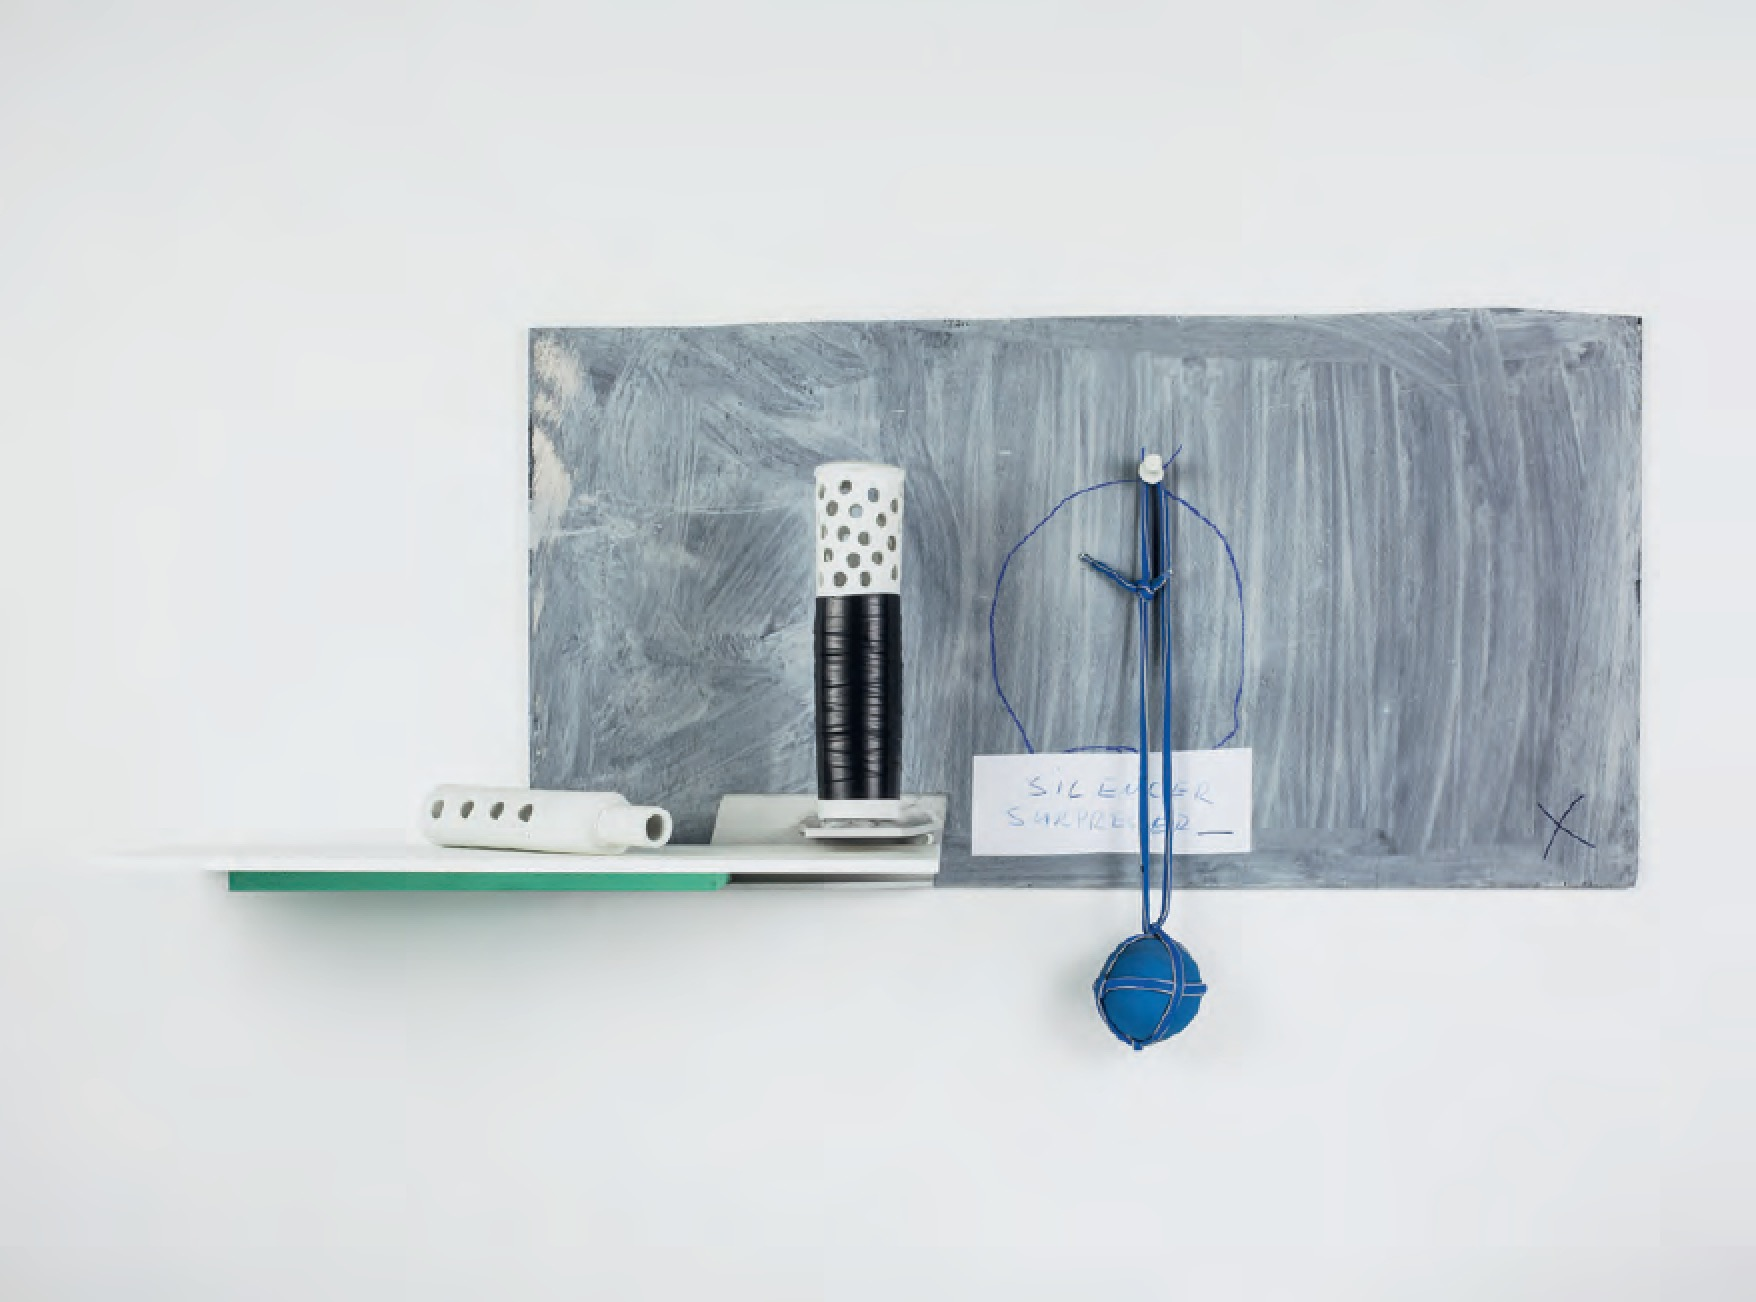 Silencer Supressor, 2015 Porcelain, granite, aluminum, rubber, and paper and acrylic on panel - JJ PEET - courtesy the artist and On Stellar Rays